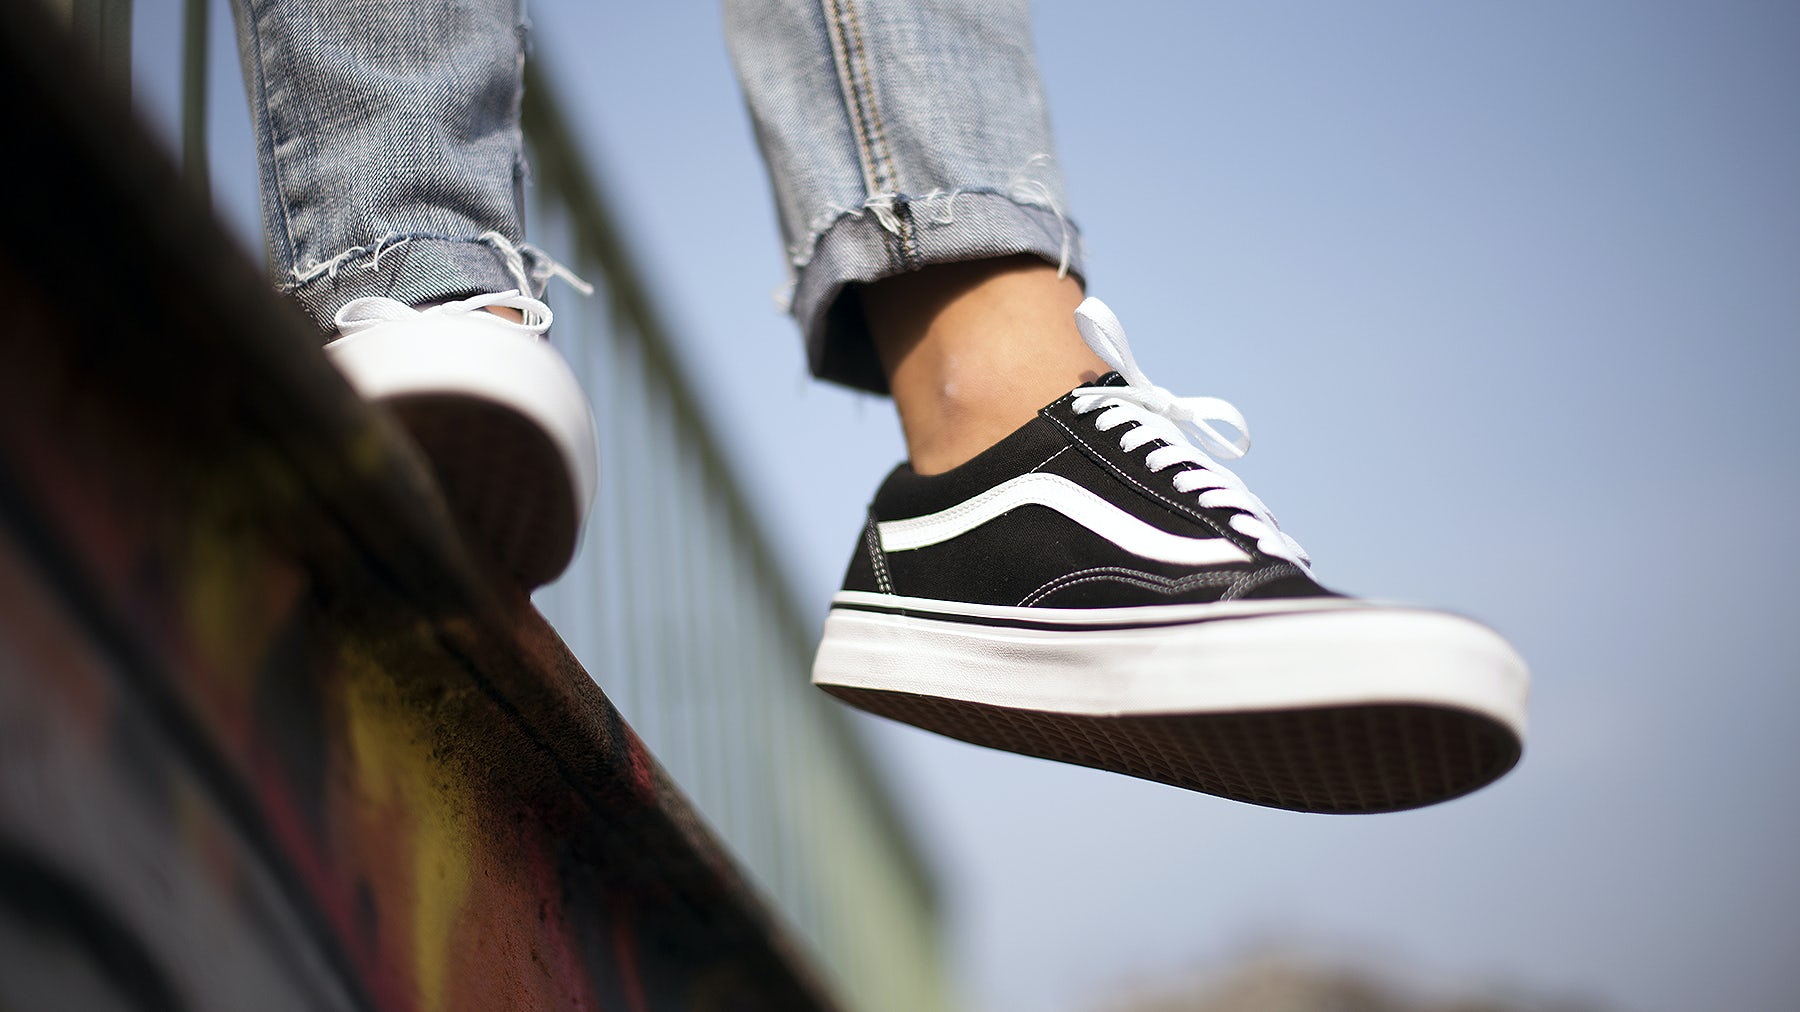 Vans footwear | Source: Shutterstock